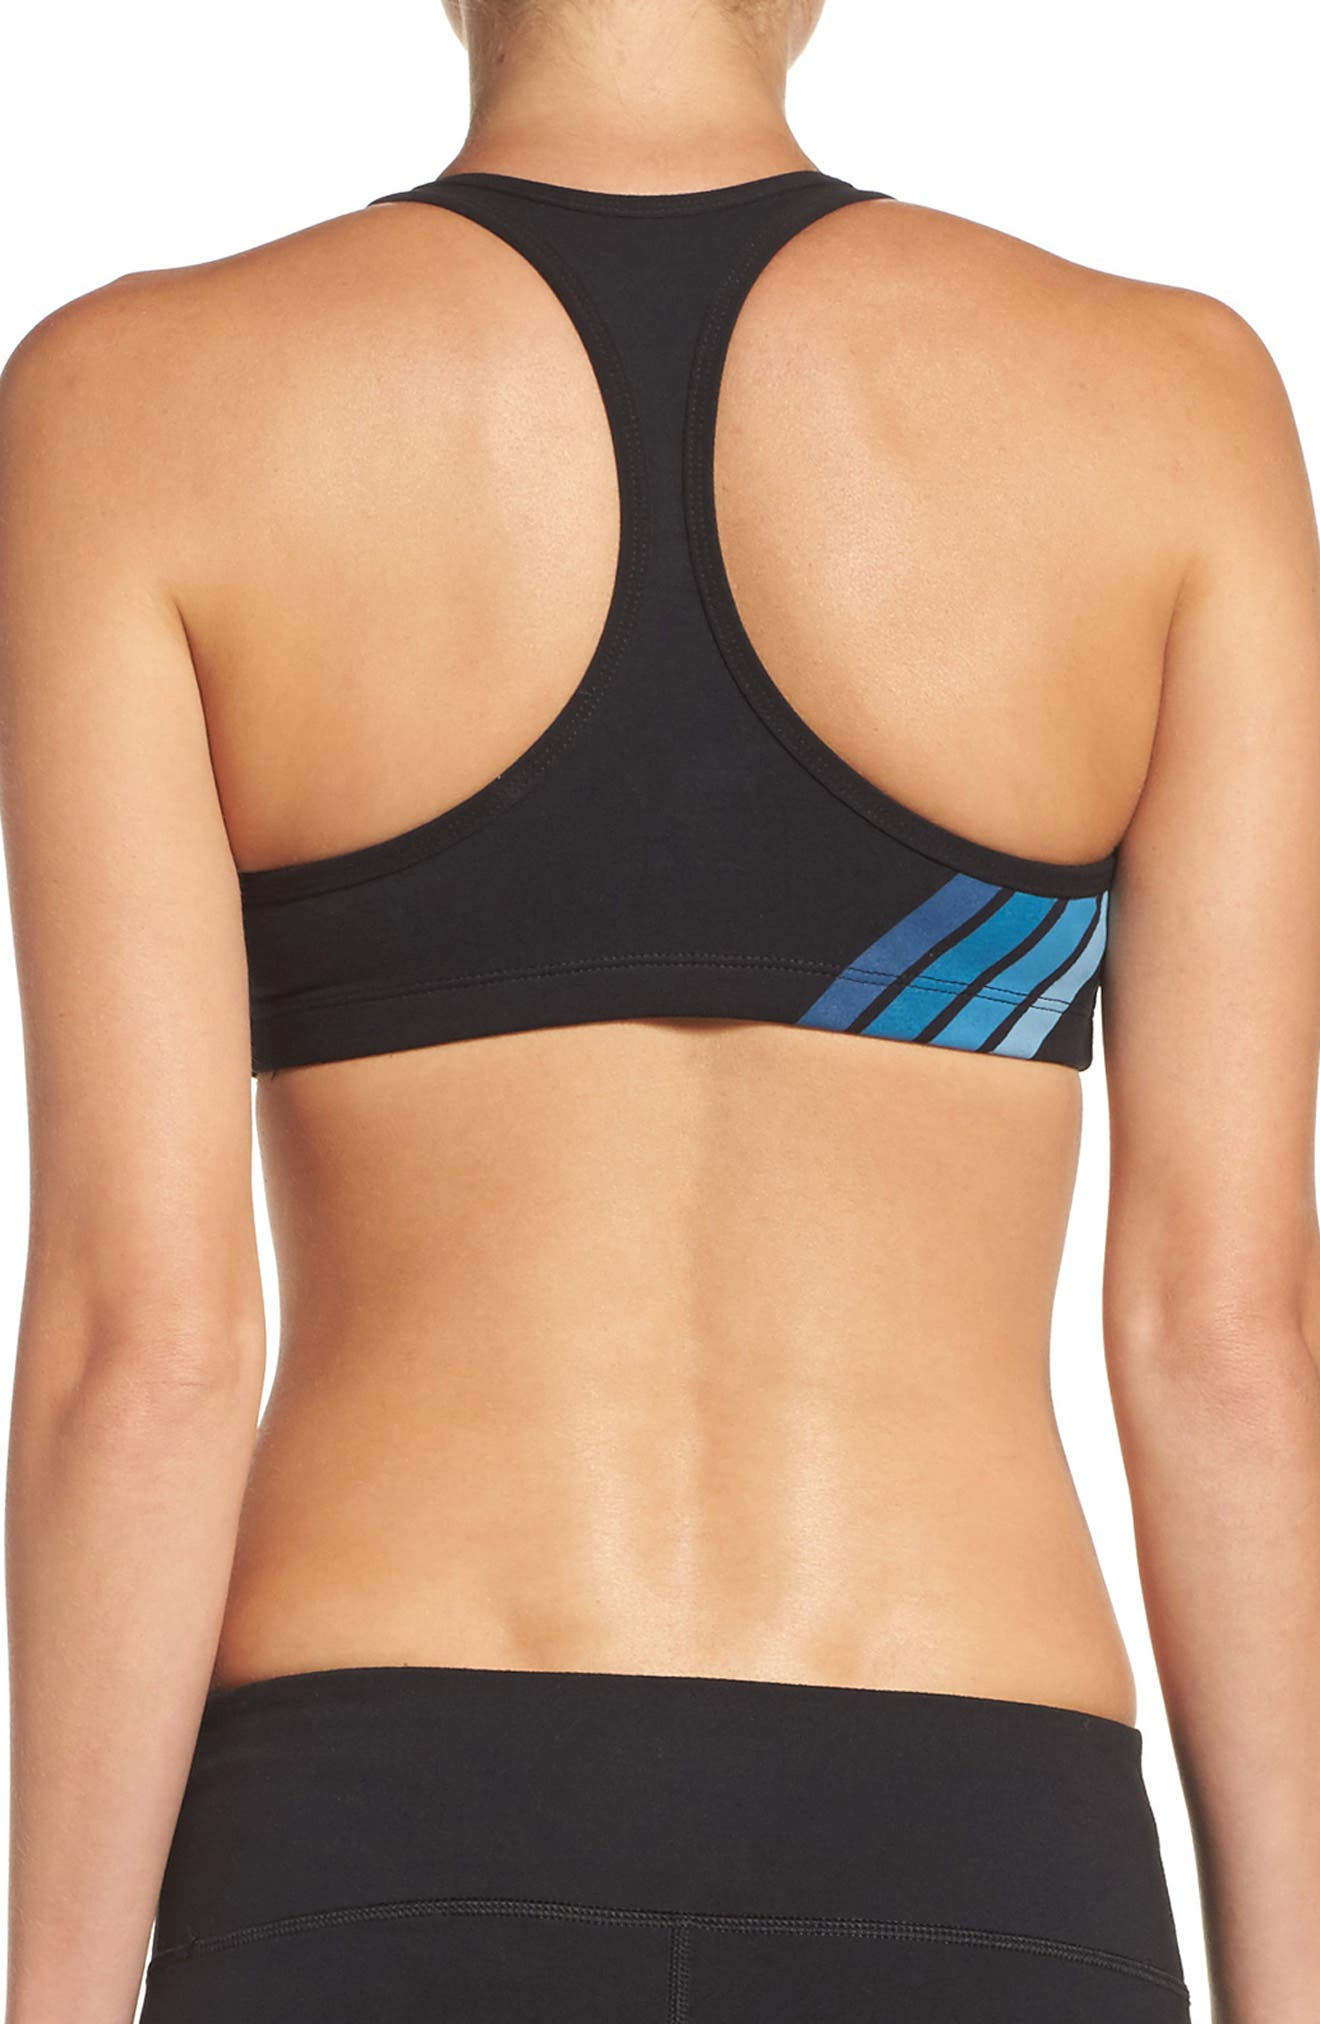 Racerback Sports Bra,                             Alternate thumbnail 2, color,                             Blue